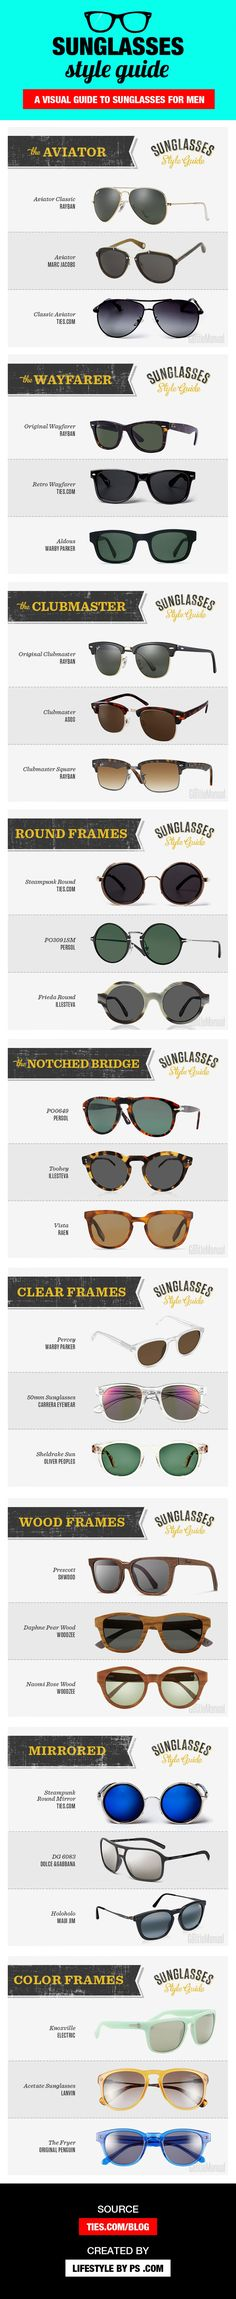 Guide To Sunglasses